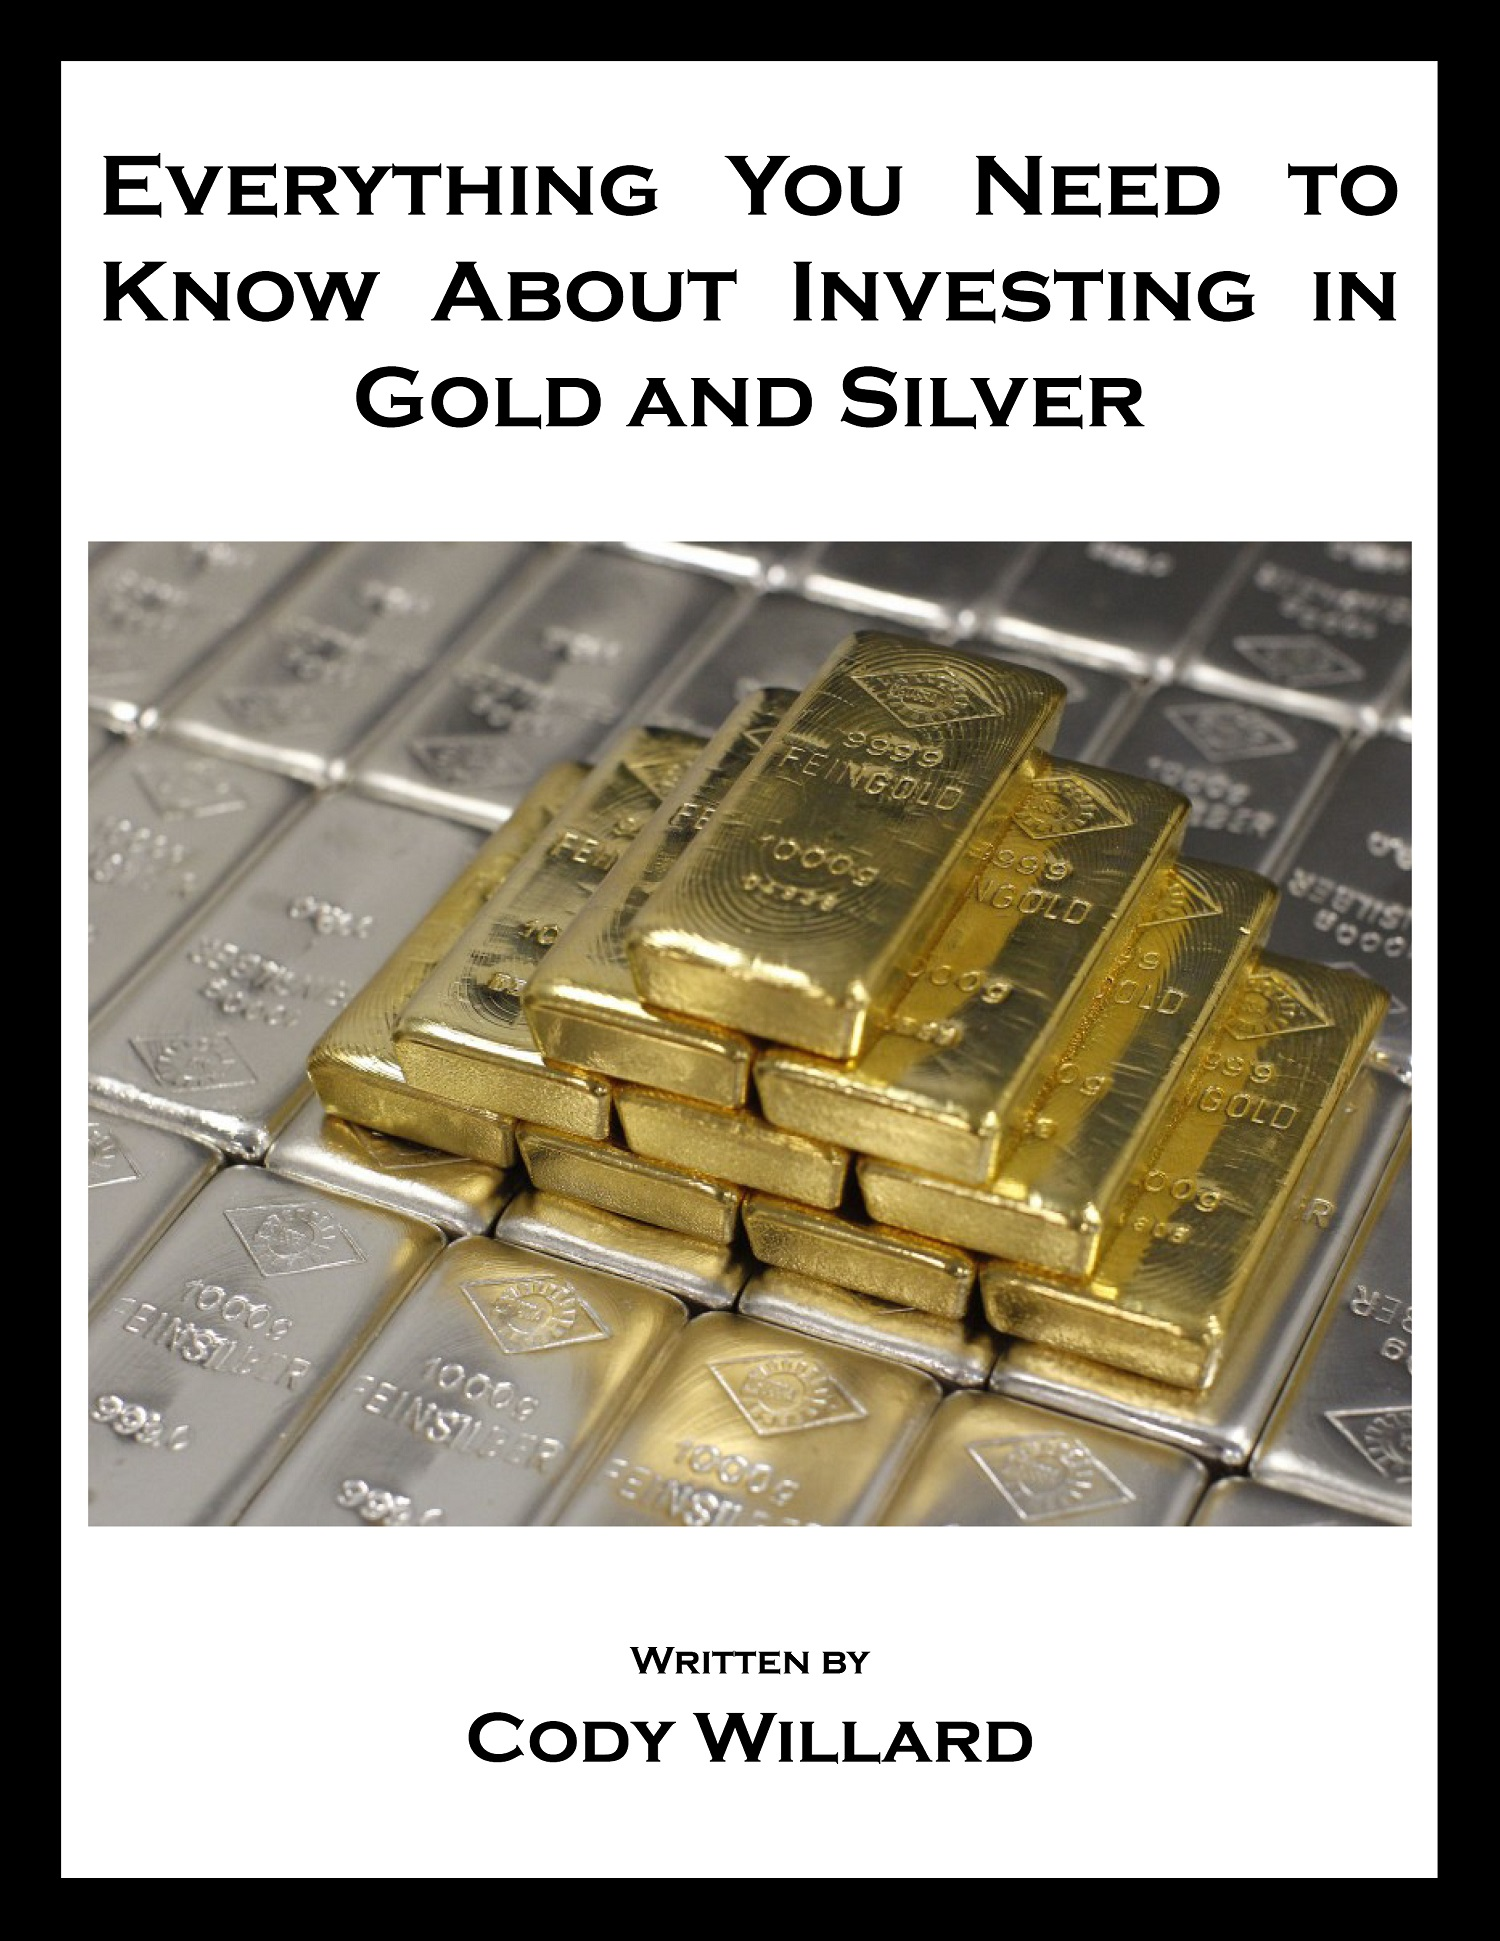 everything you need to know about investing in gold and silver